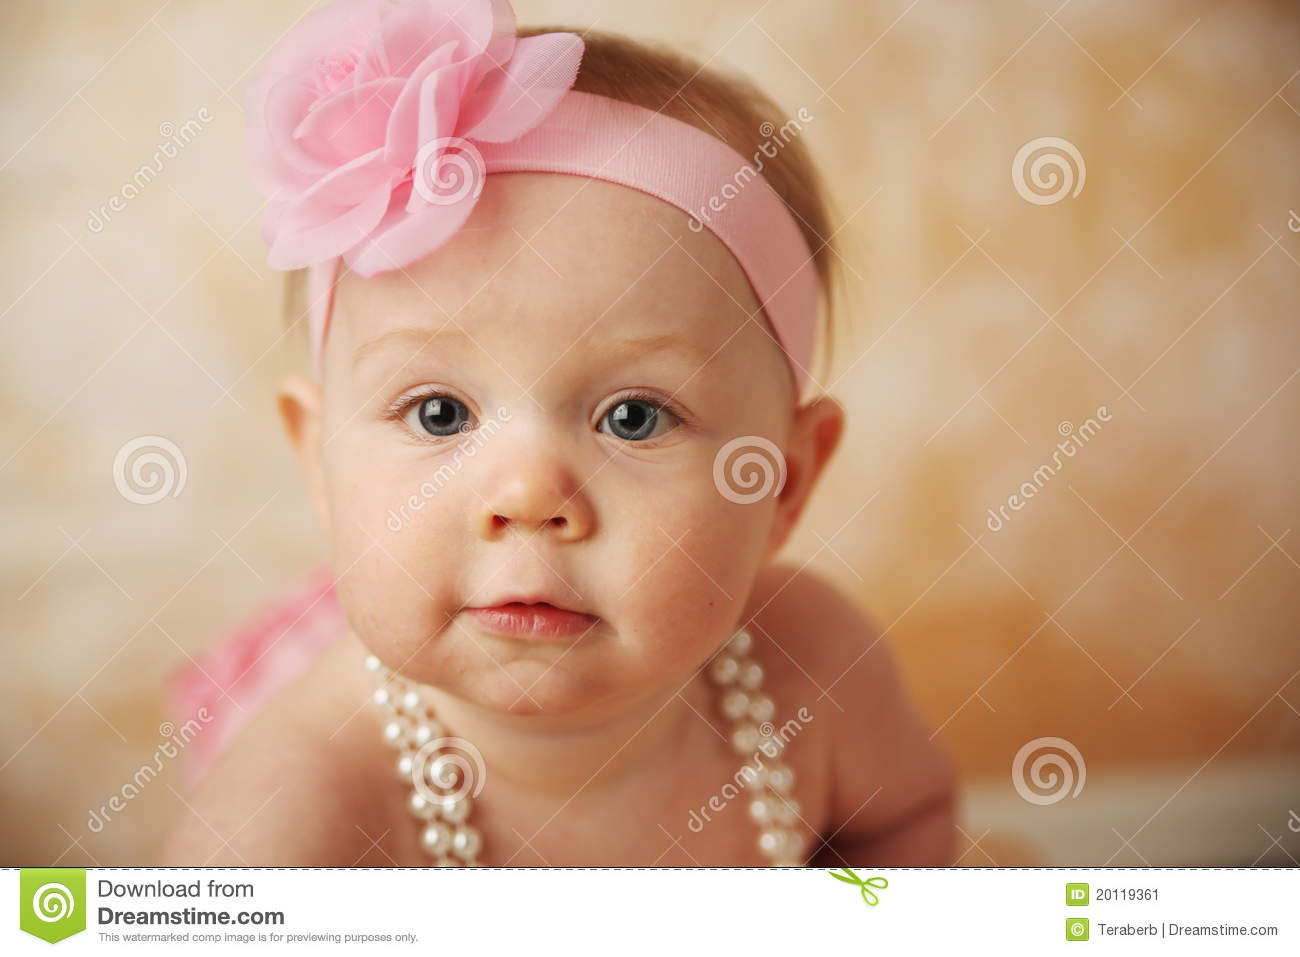 beautiful baby girl stock image - image: 20119361